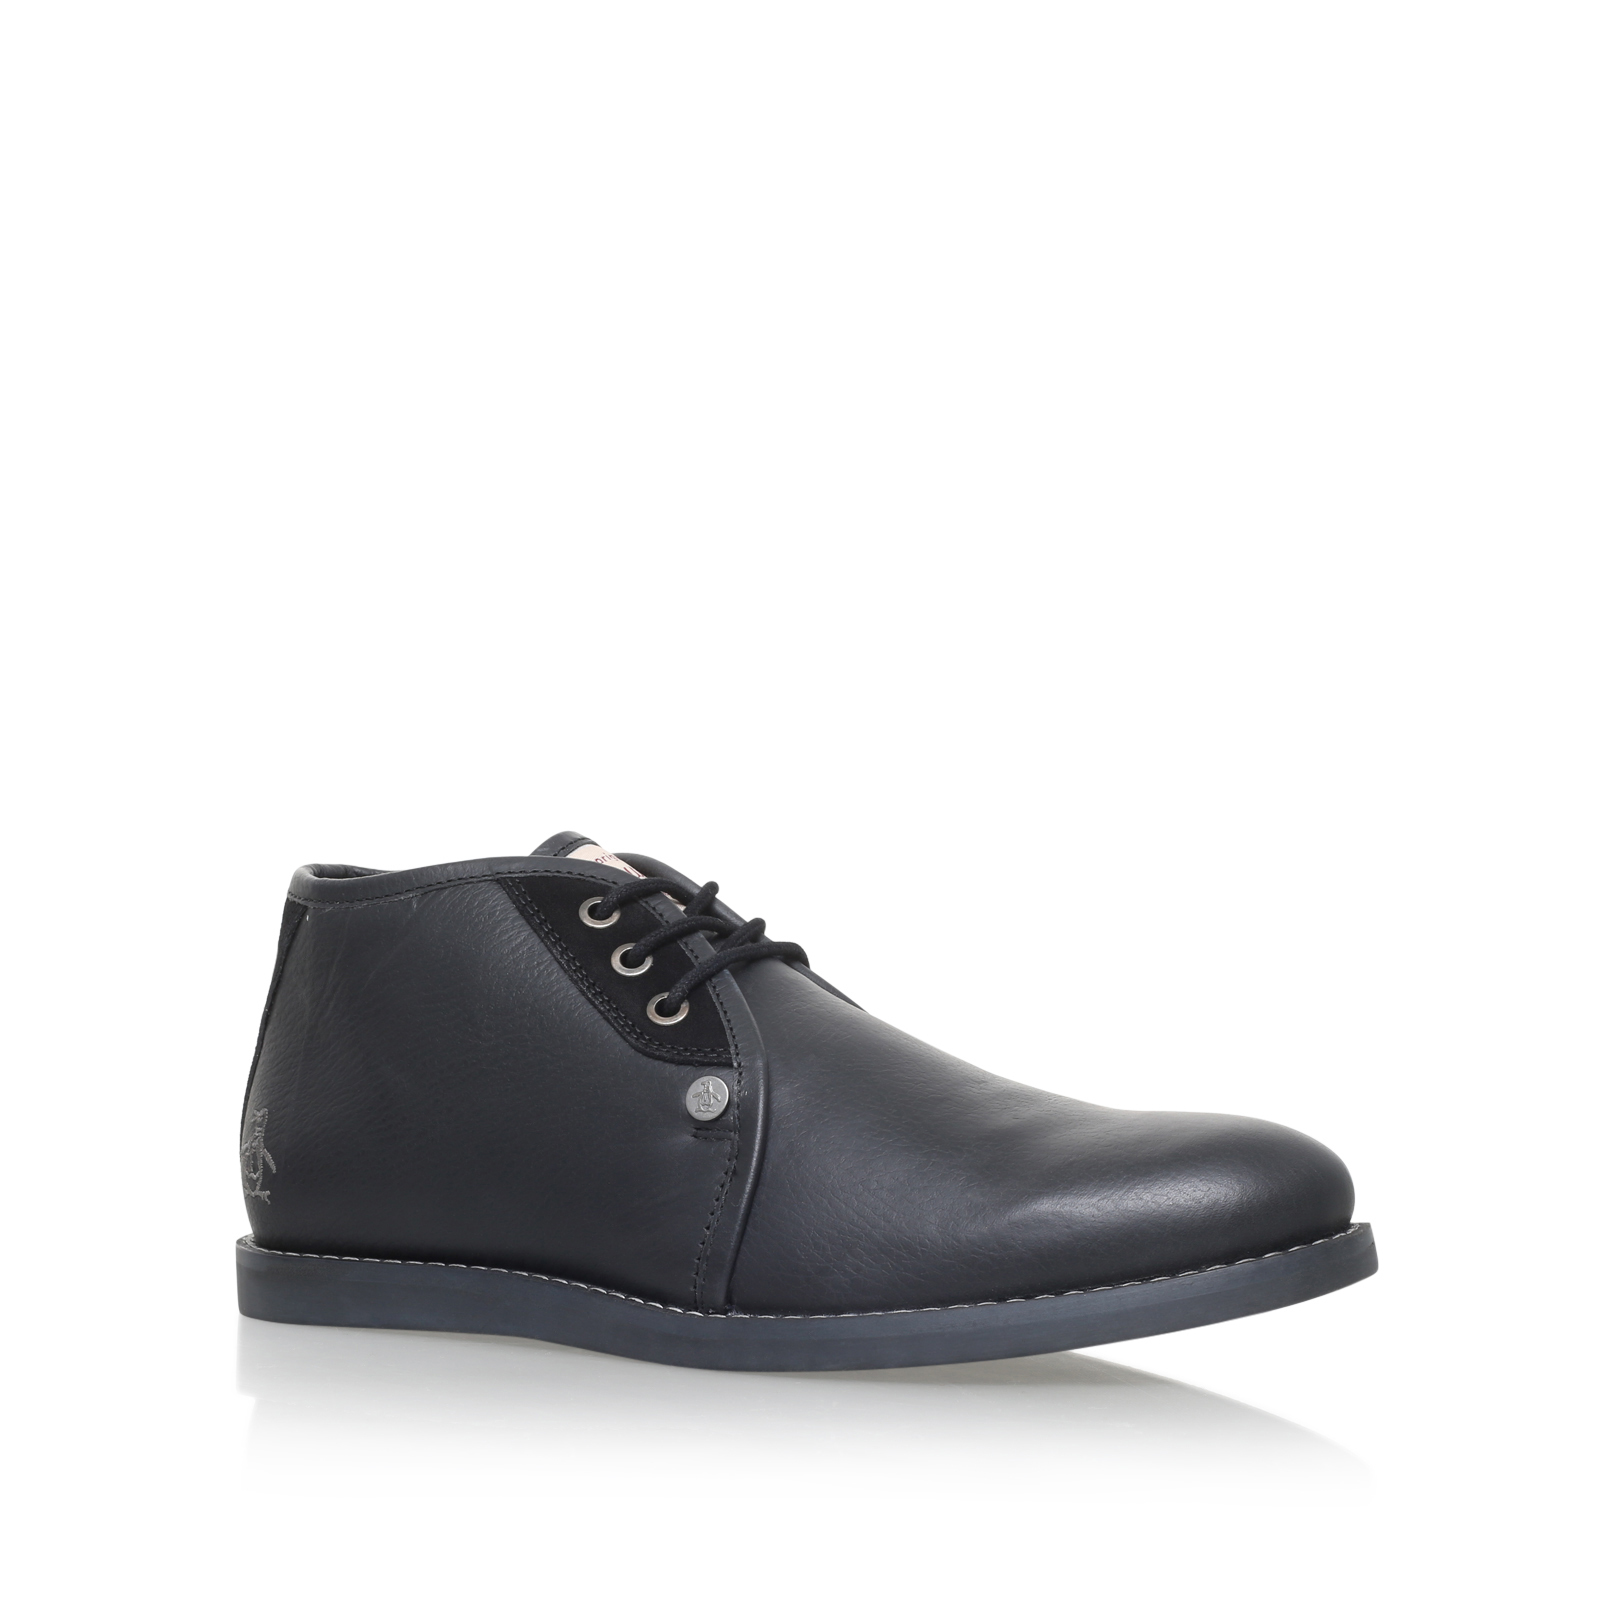 LEATHER LOW ANKLE BOOT